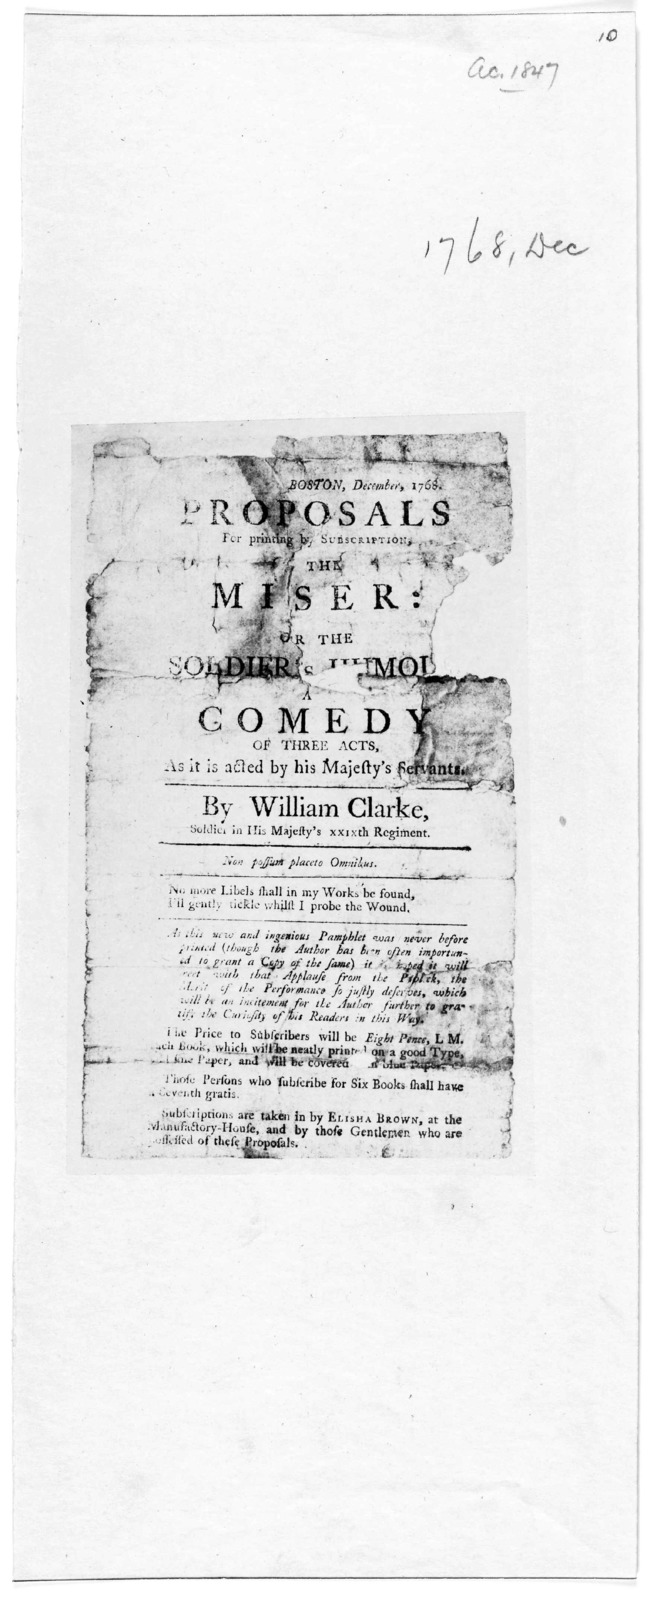 Proposals for printing by subscription the miser: or, the soldies [blank] A comedy of three acts, as it is [blank] acted by his Majesty's servants by William Clarke. Boston December 1768.